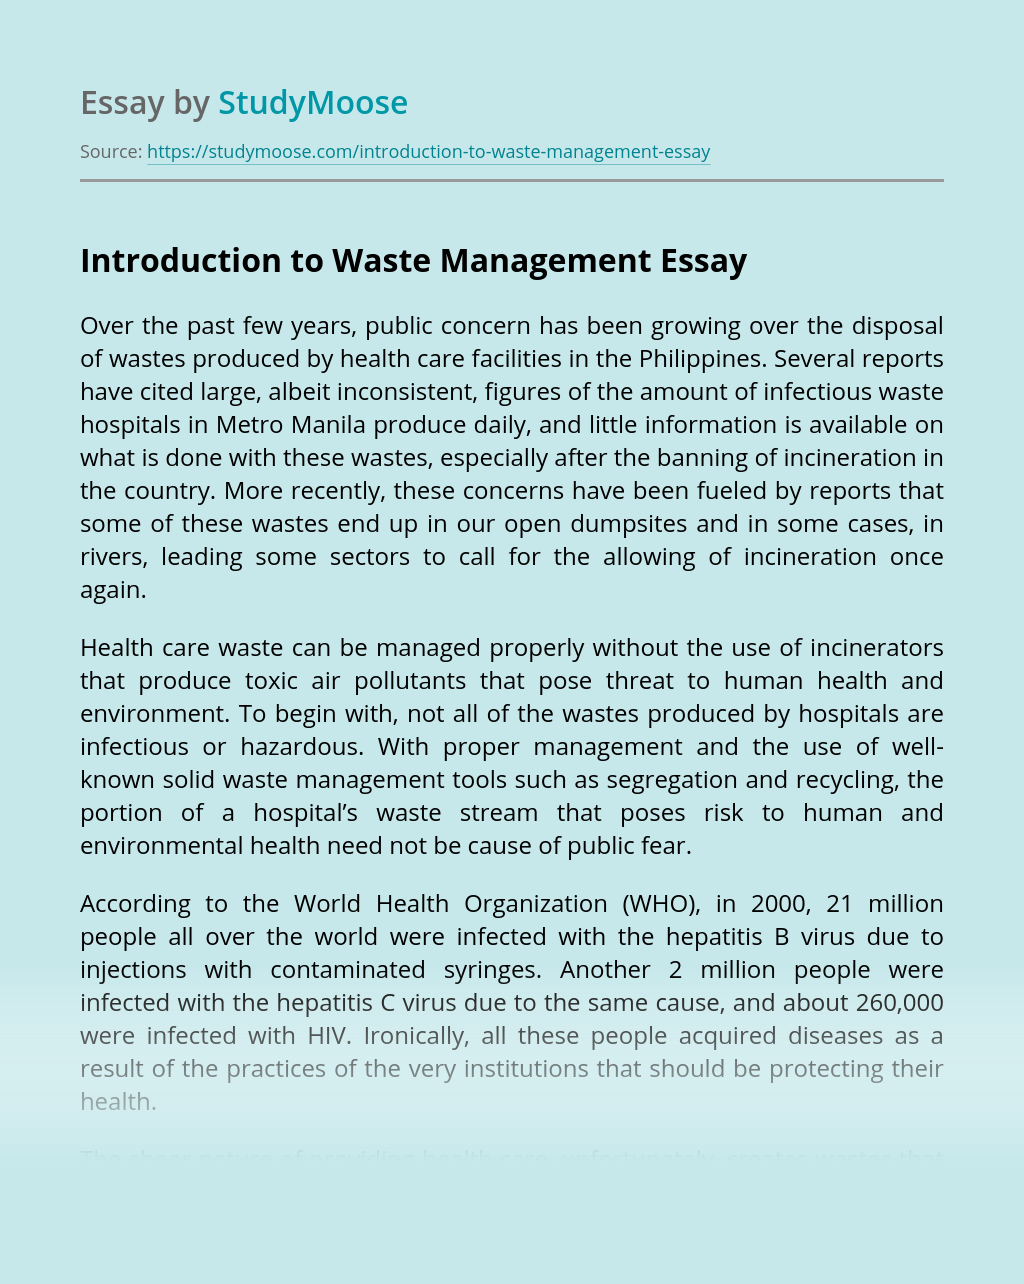 Introduction to Waste Management